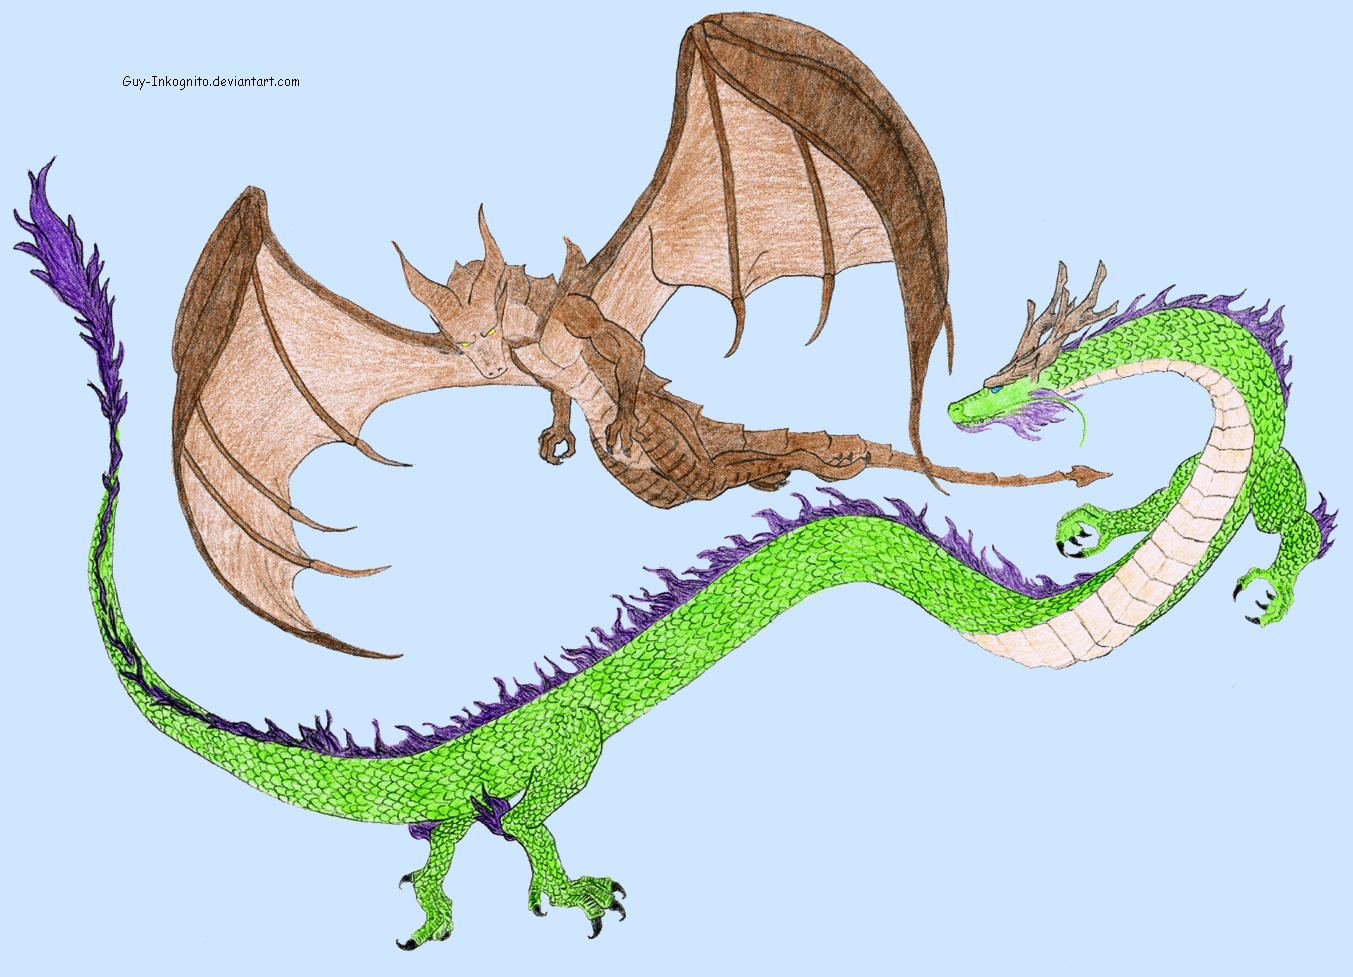 European Dragon: Asian Dragon Vs European Dragon Colored By Guy-Inkognito